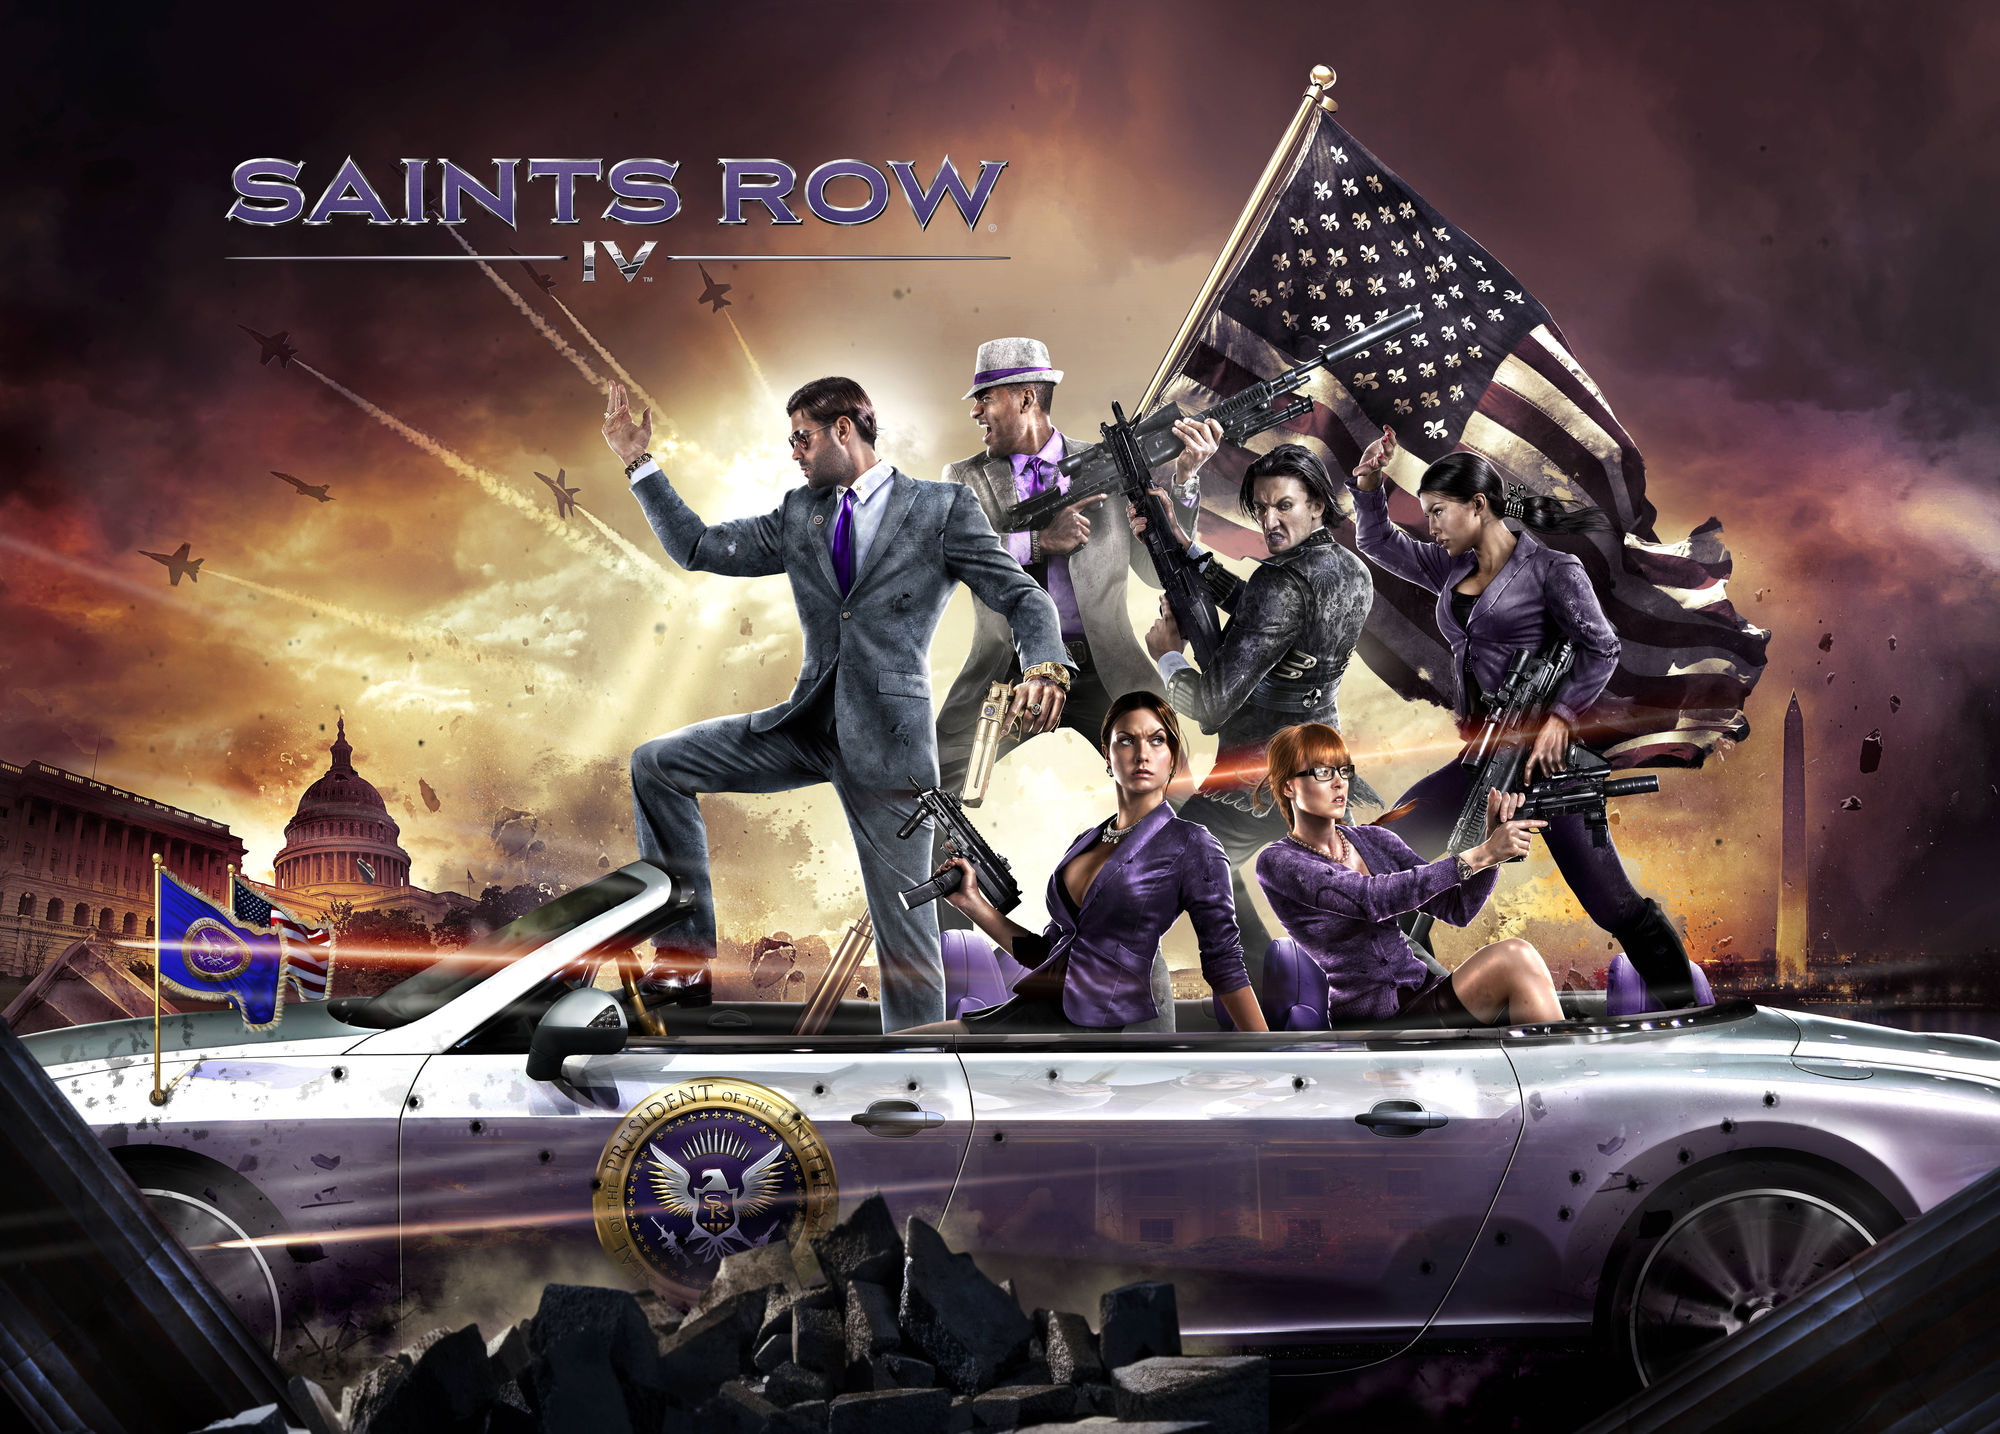 Saints_Row_IV_promo_-_Crossing_the_Delaware